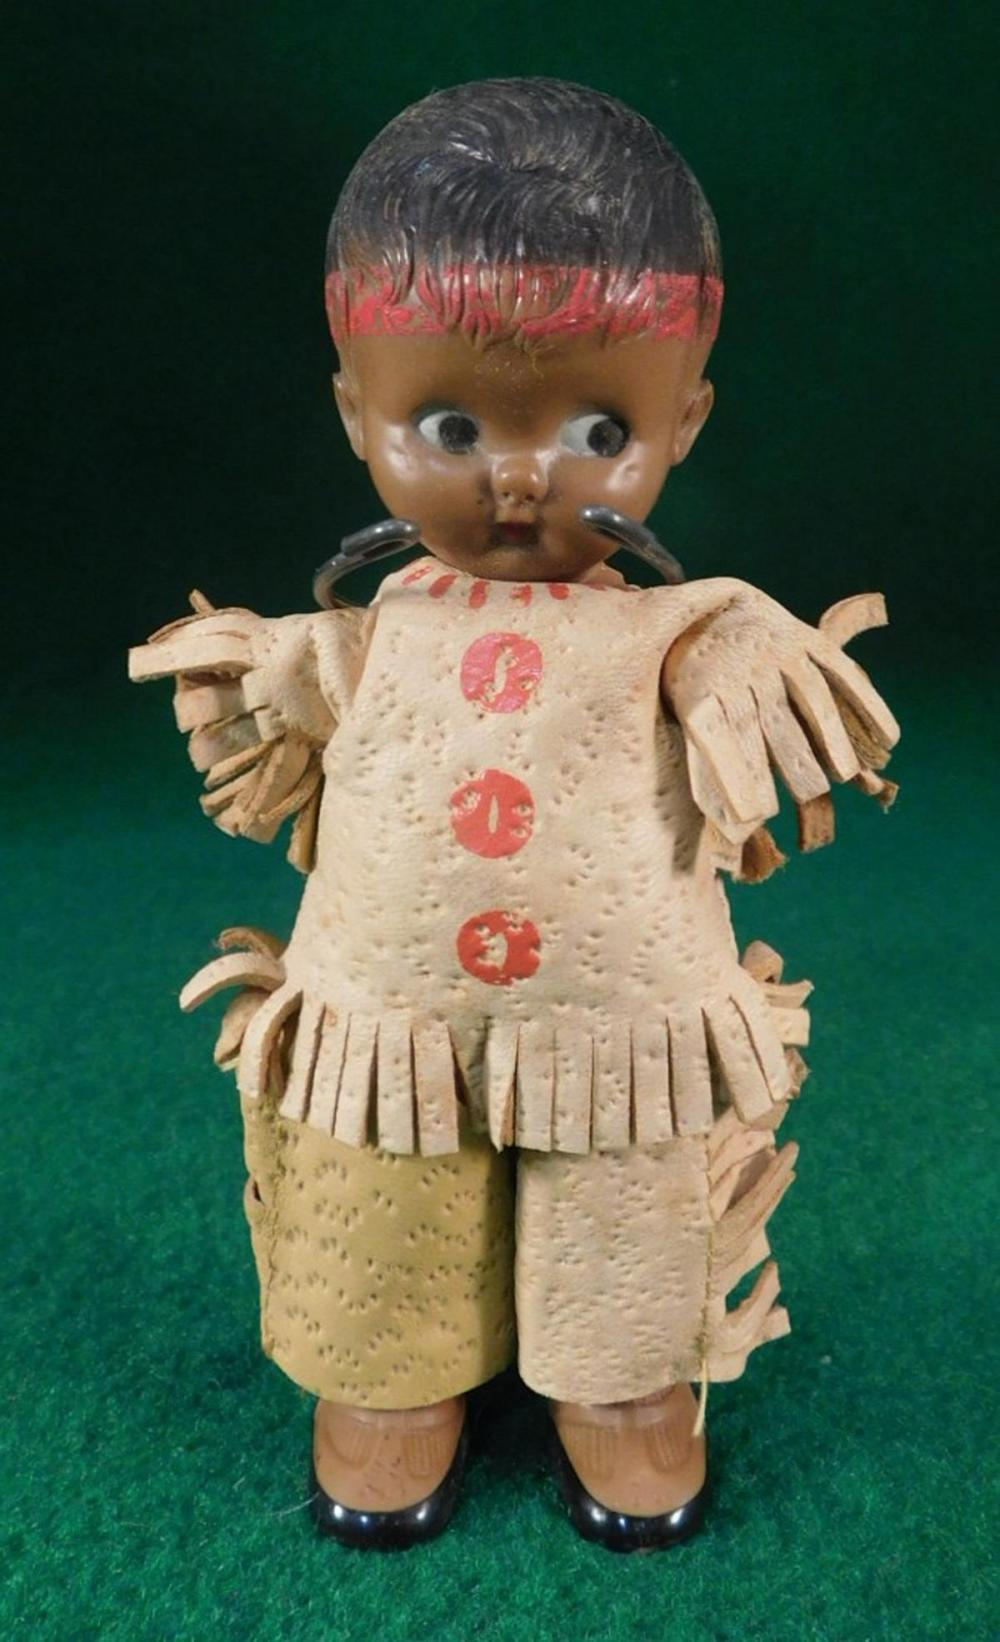 VINTAGE INDIAN DOLL (YES, WE SHIP!)